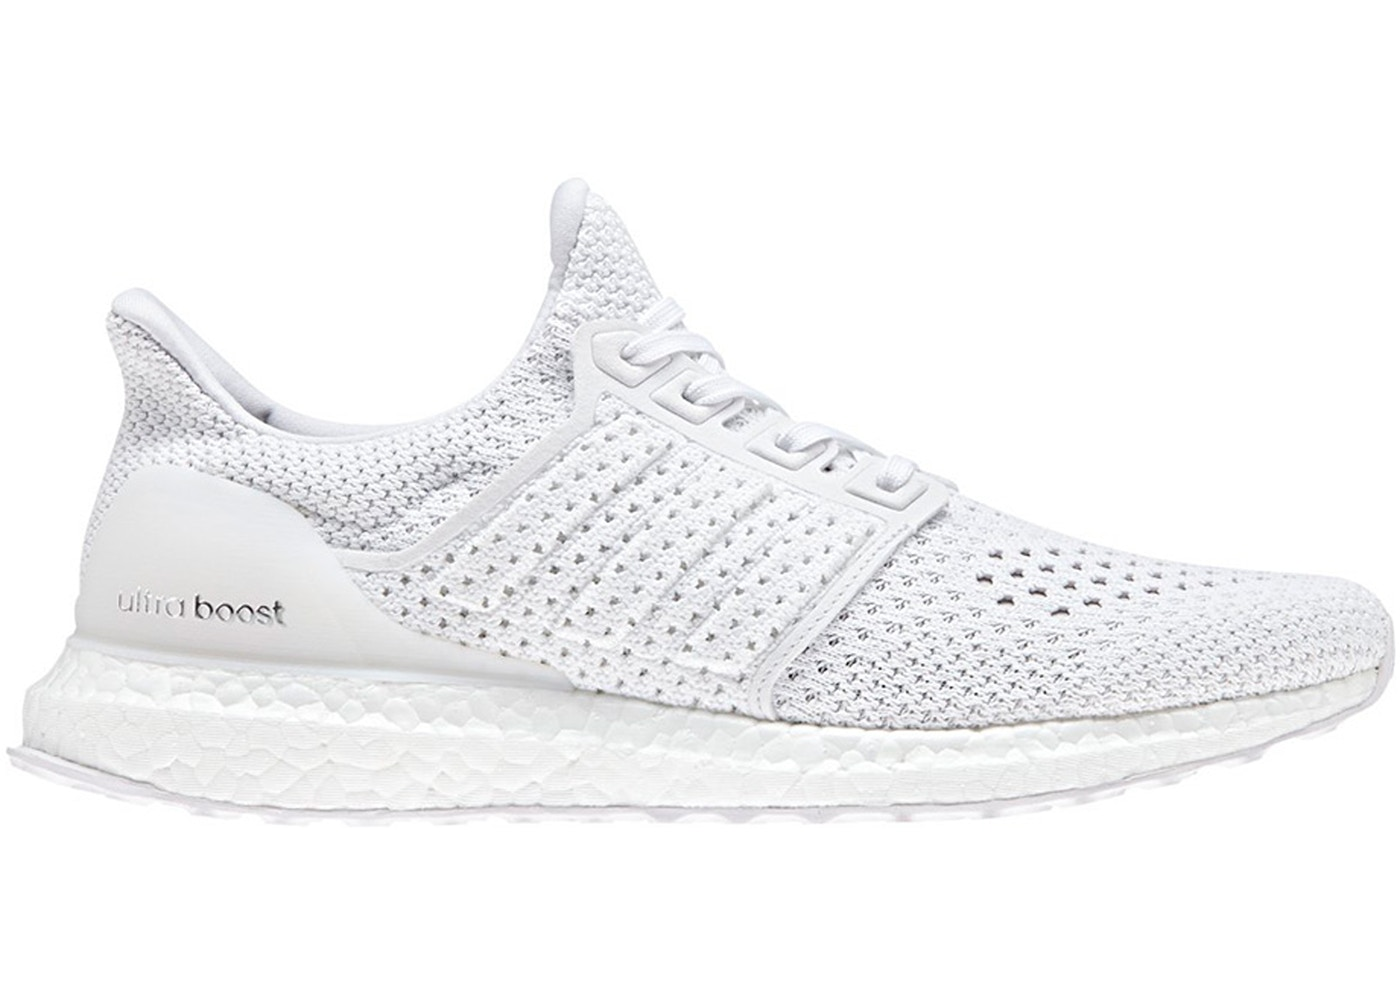 b12d655dabb17 adidas Ultra Boost Clima White - BY8888